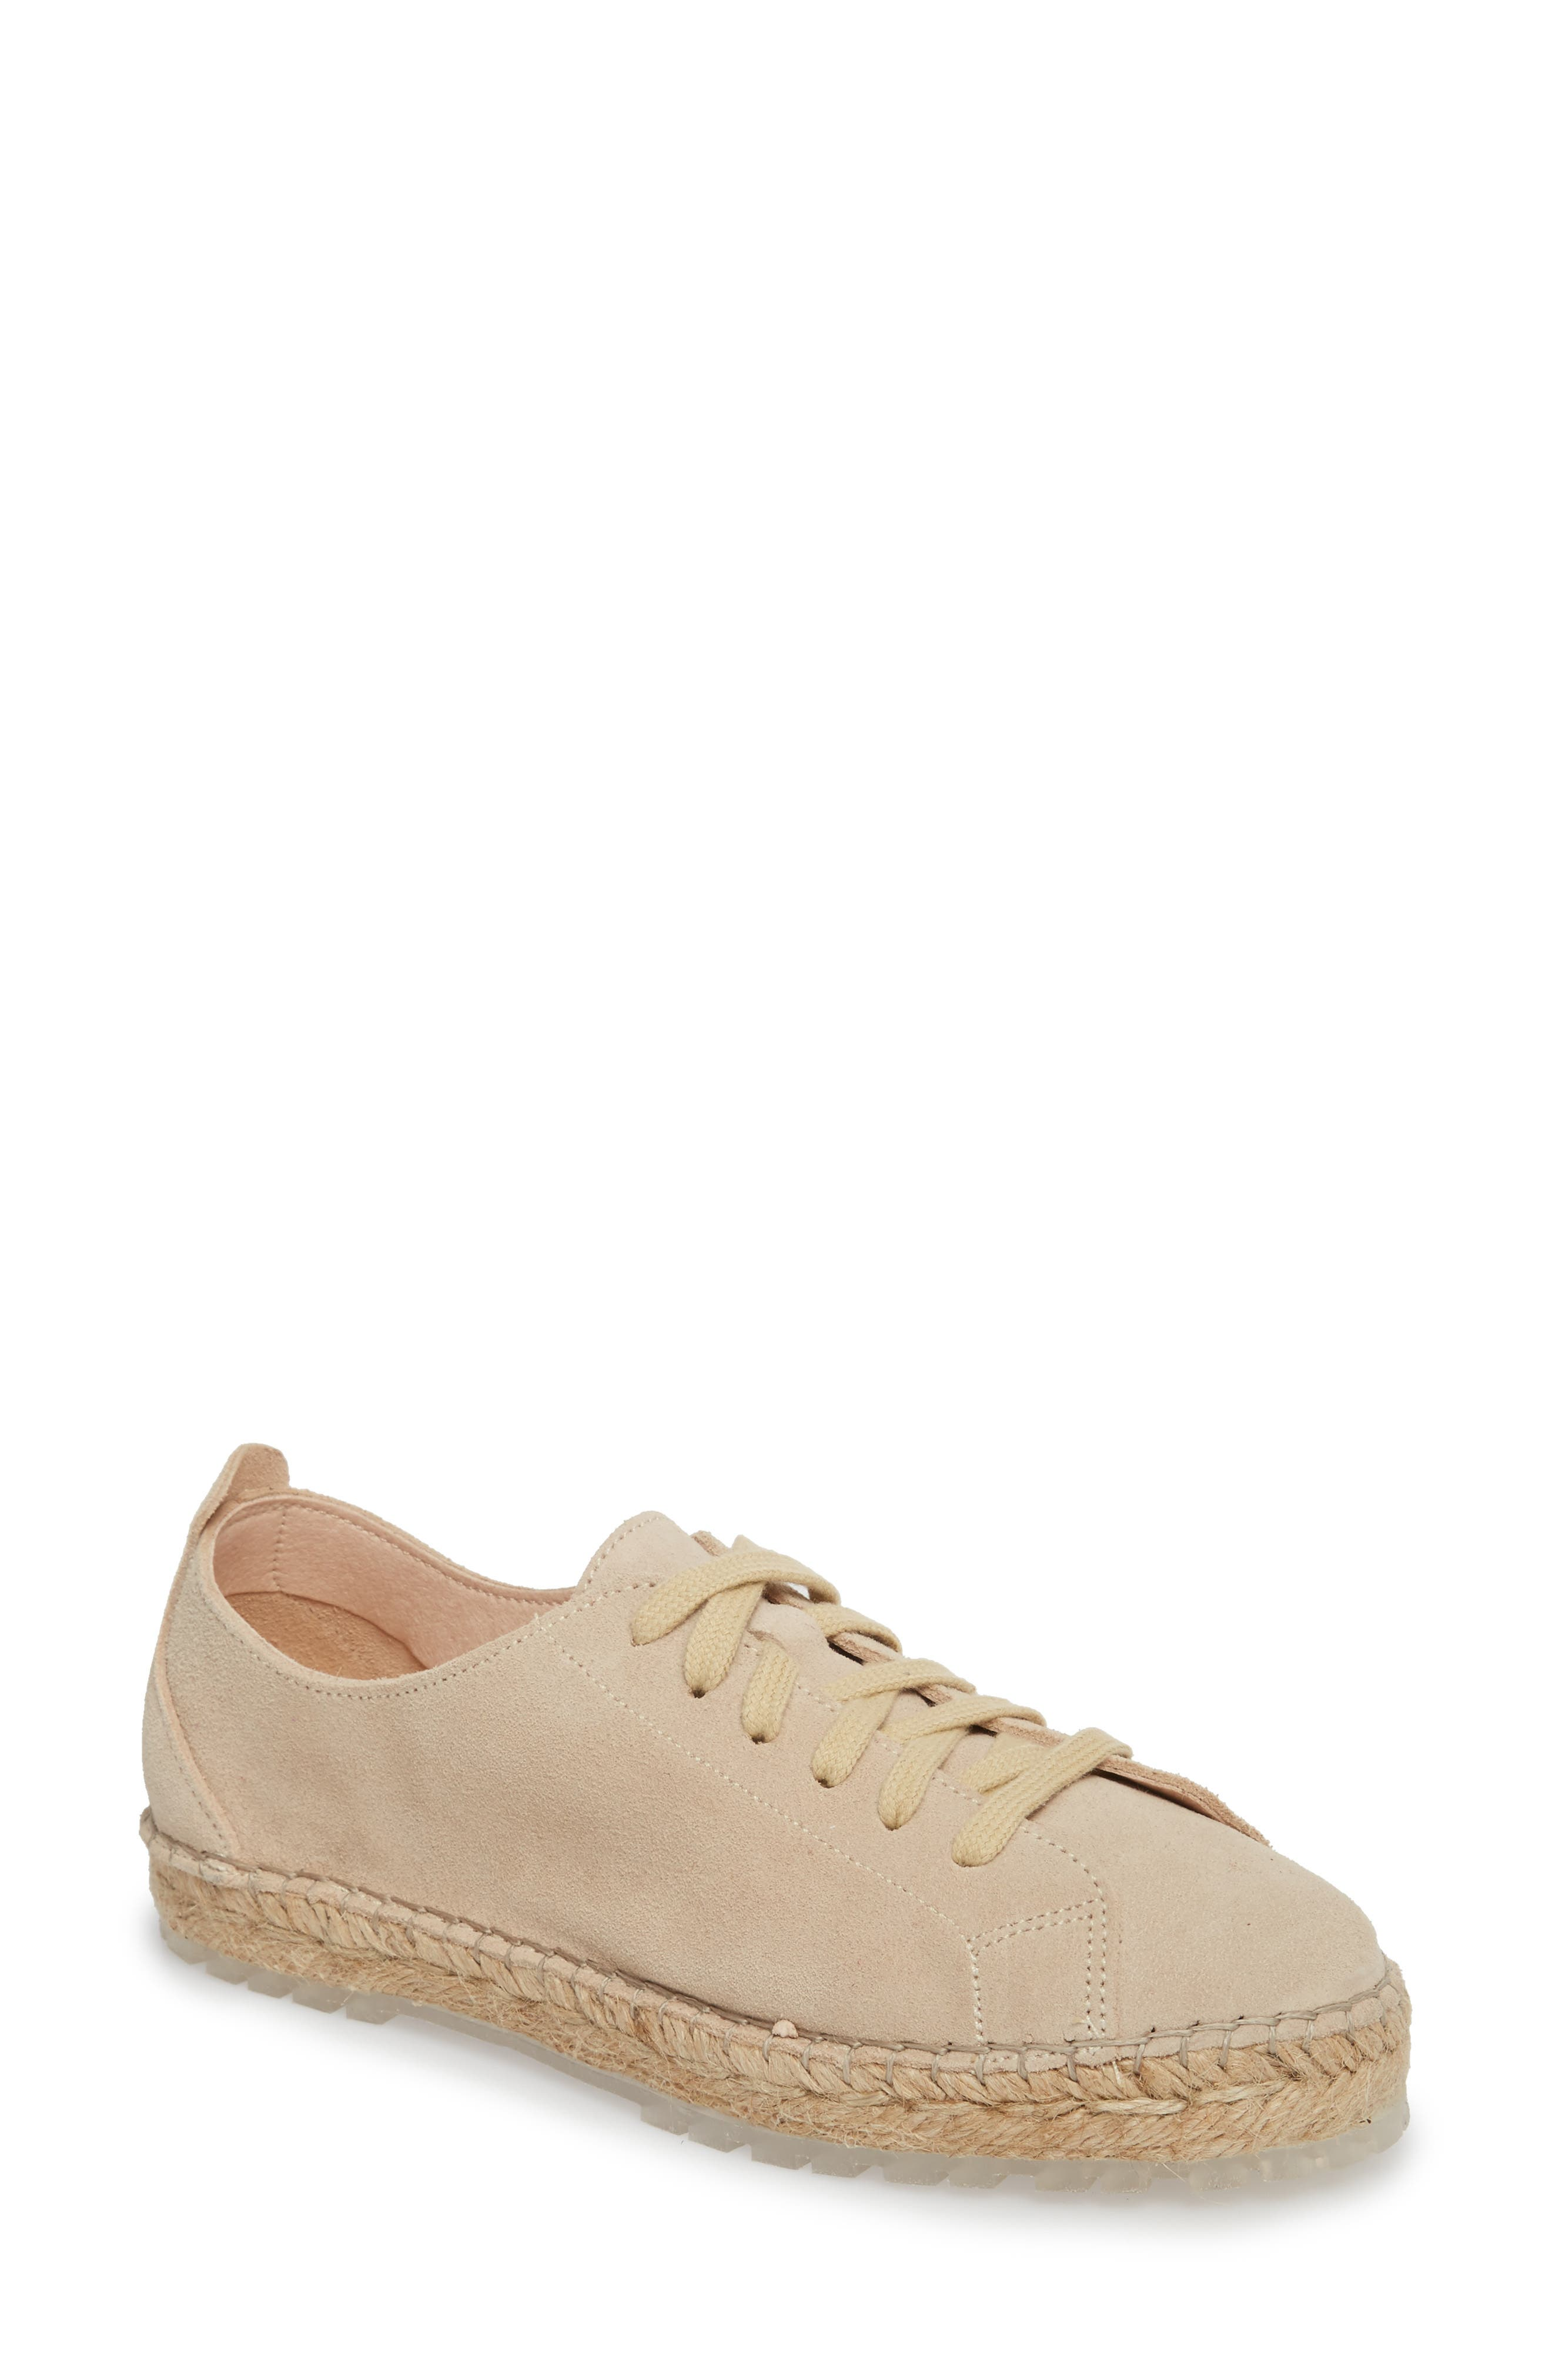 Zane Espadrille Sneaker,                             Main thumbnail 1, color,                             Taupe Suede